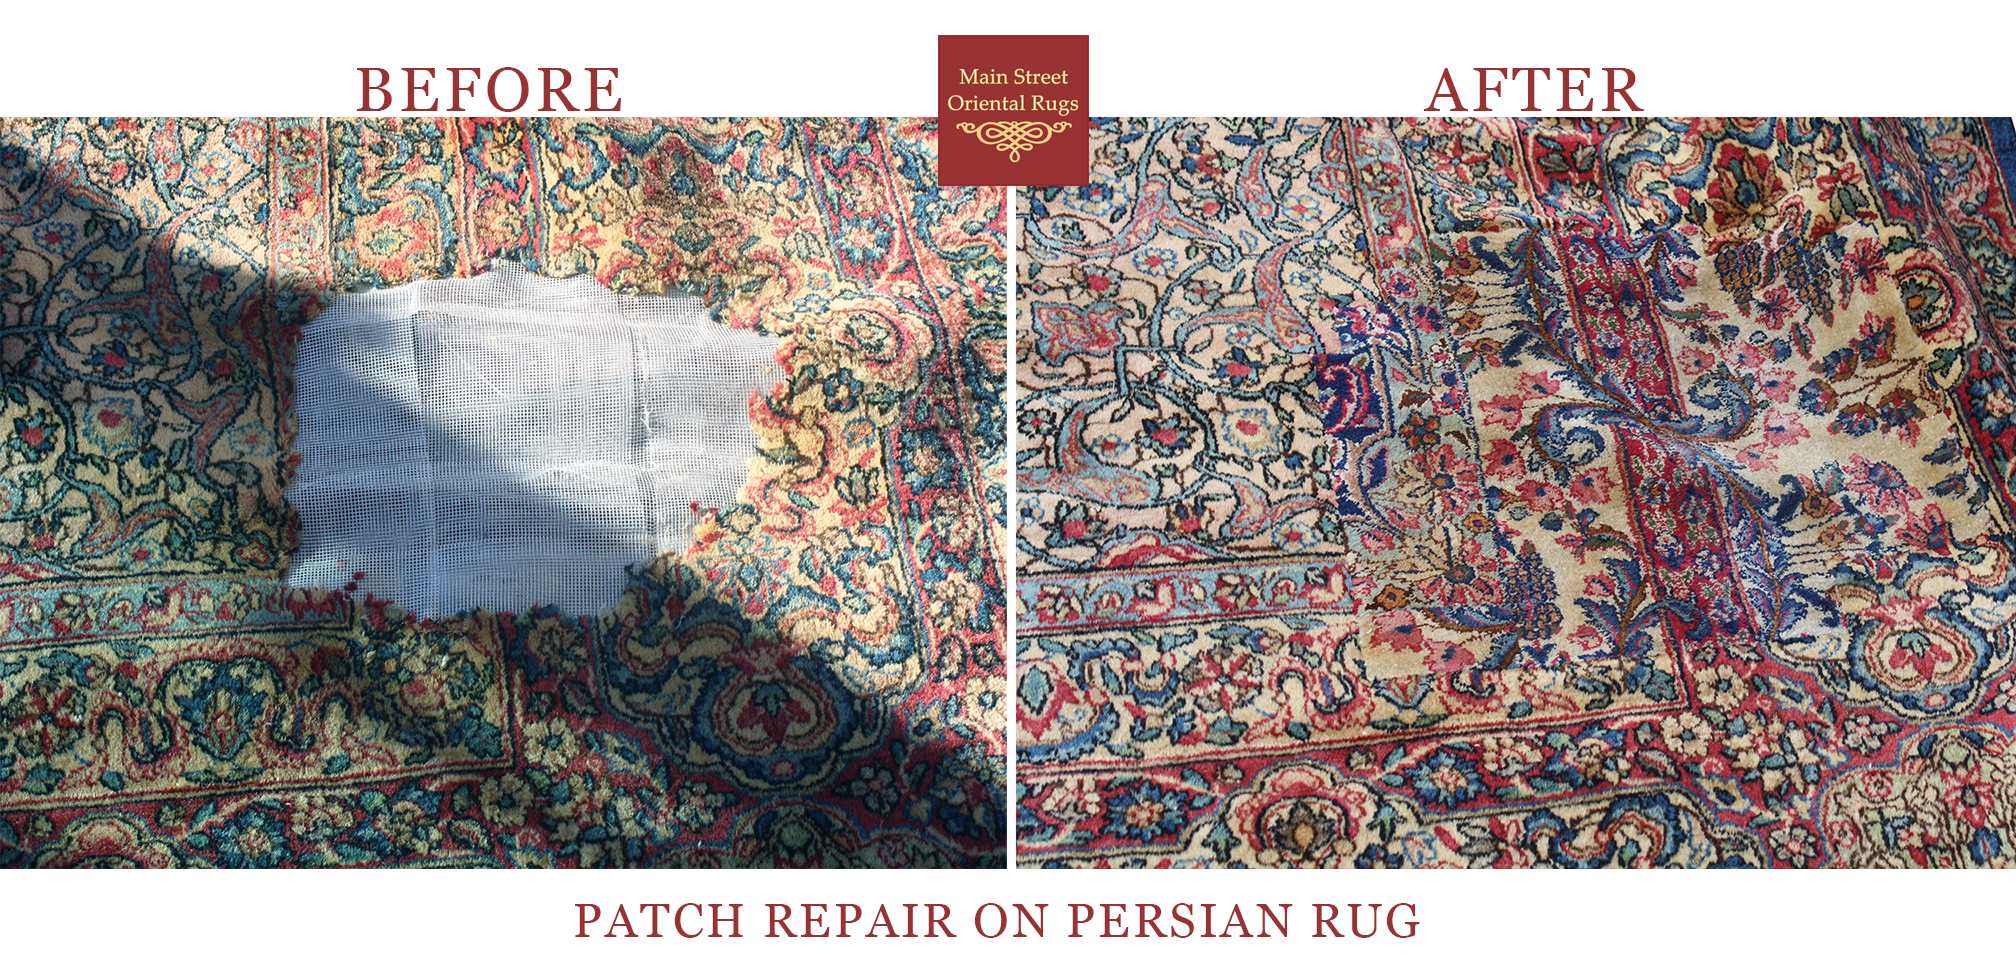 Persian rug patch repair - Main Street Oriental Rugs